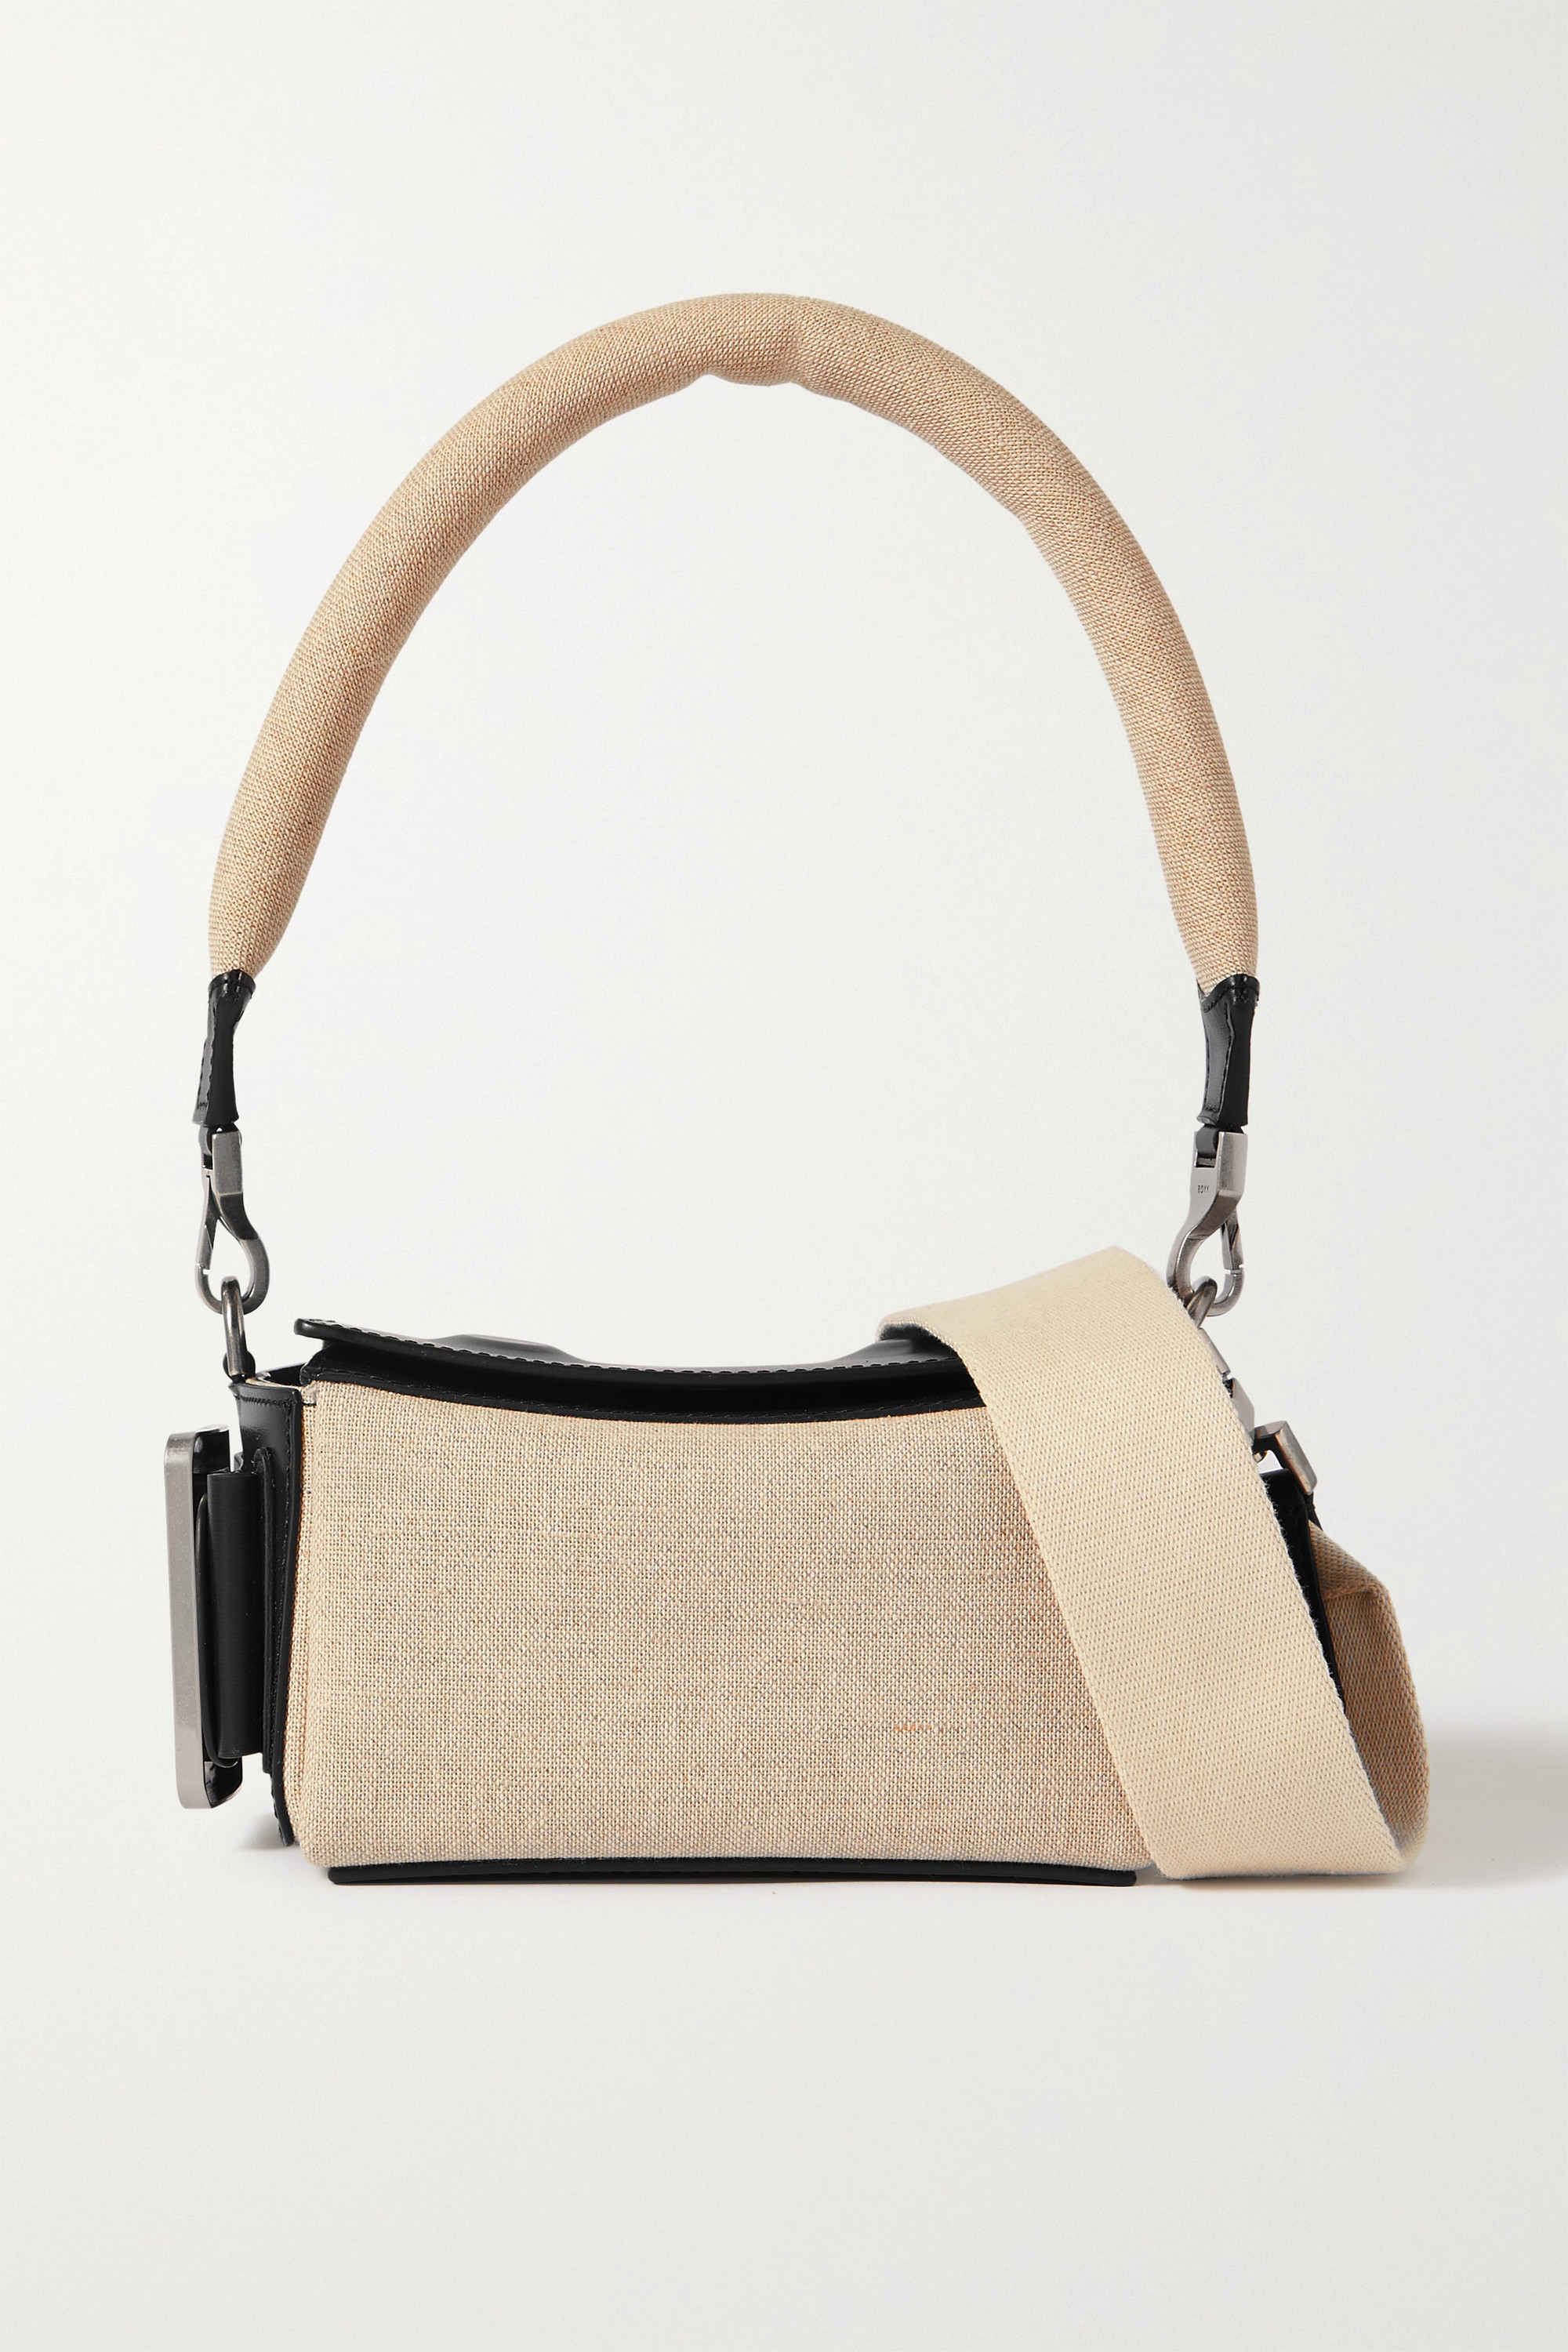 BOYY Shoulder Box buckled leather and canvas bag